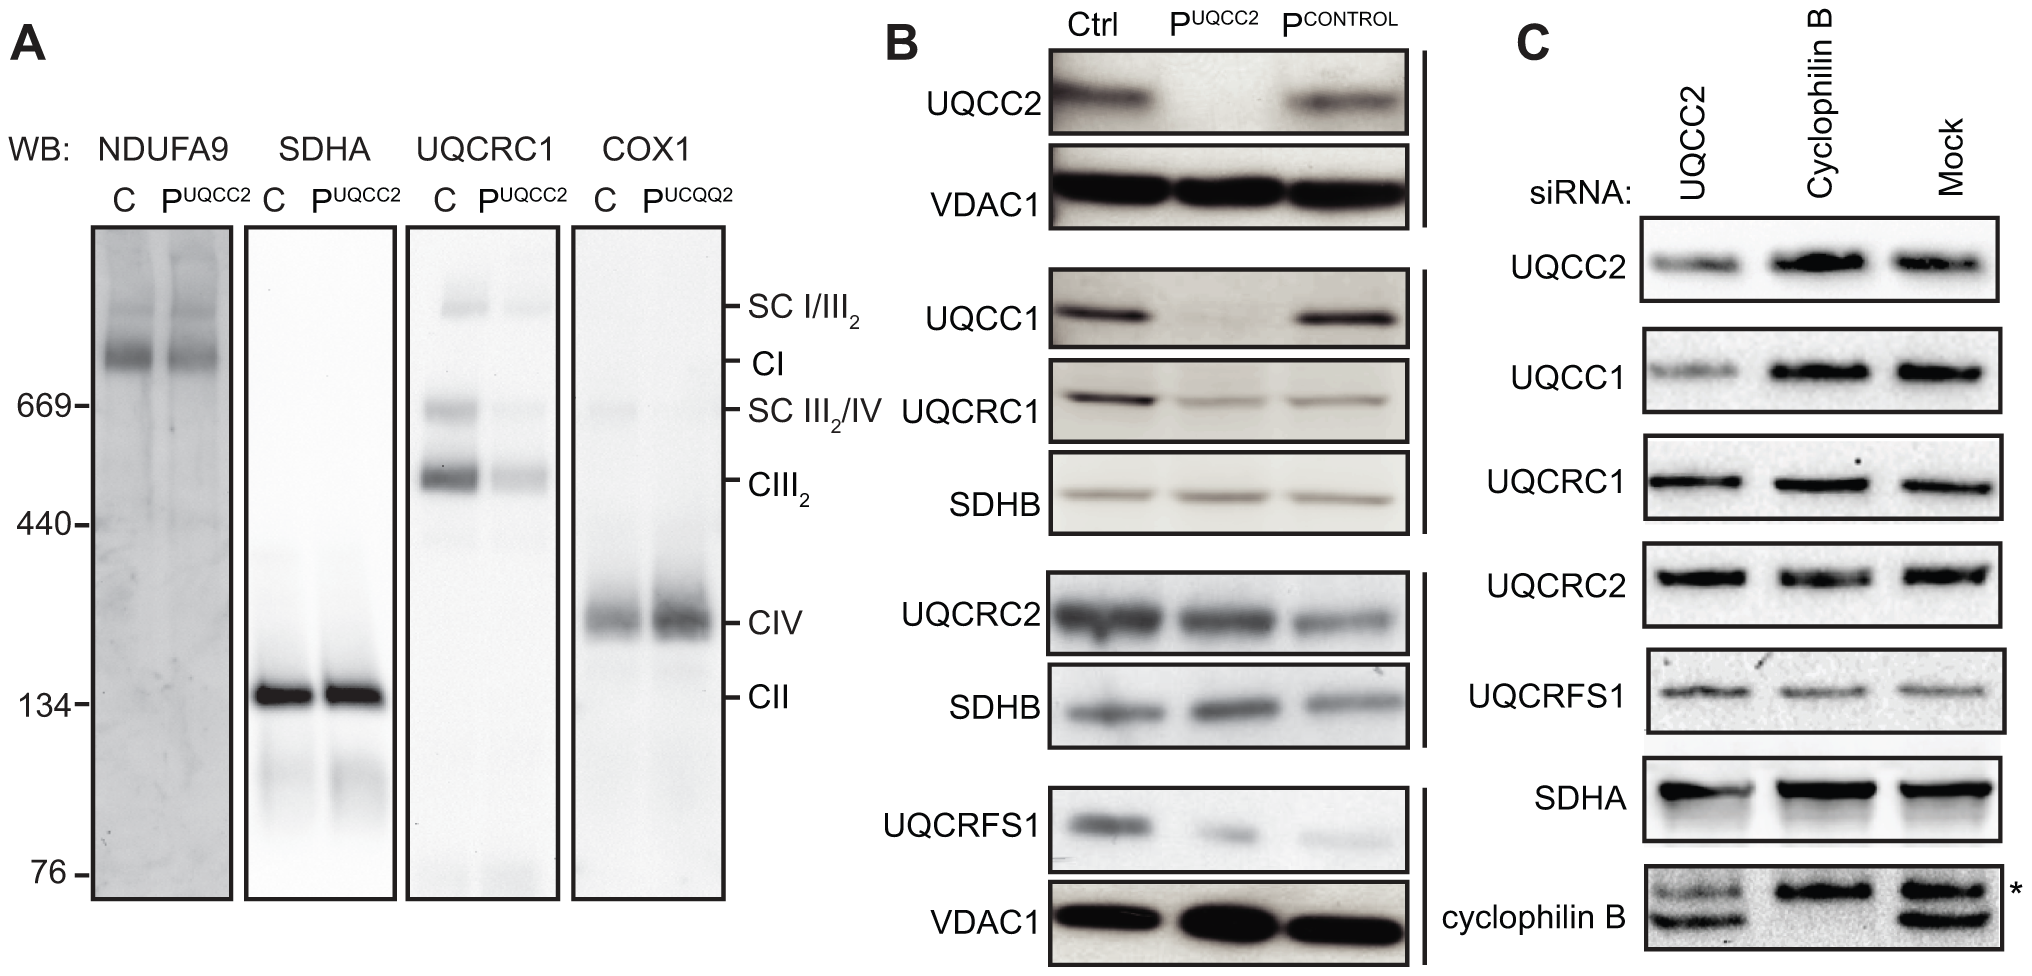 Lack of UQCC2 is associated with aberrant complex III assembly, subunit expression and UQCC1 stability.